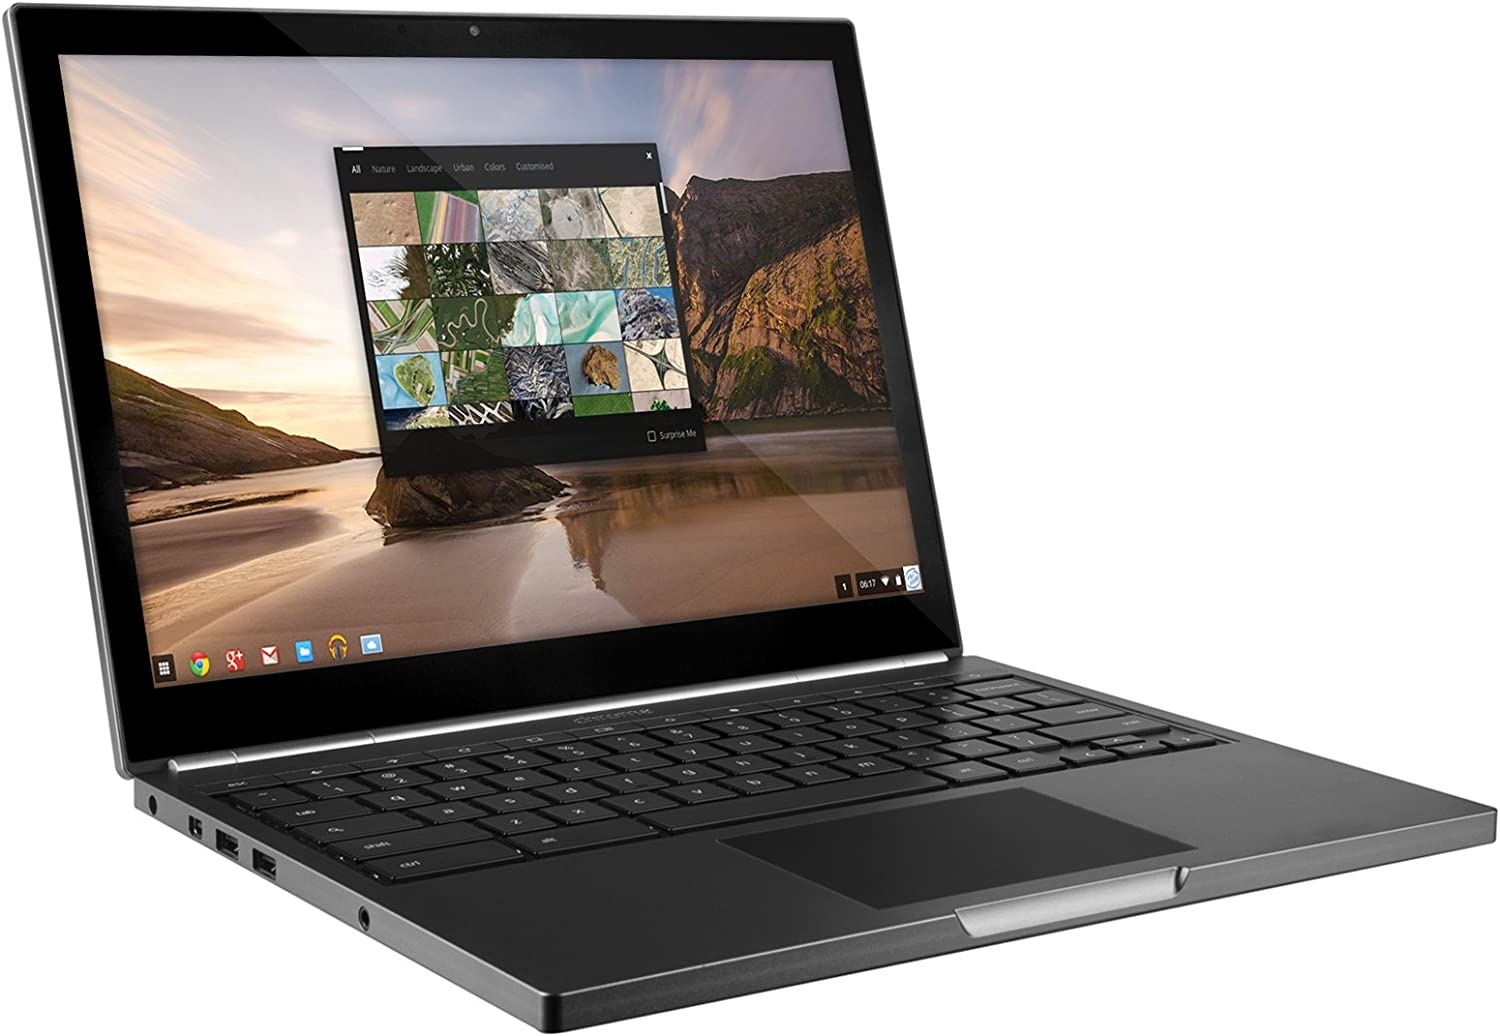 "Super Google Chromebook Pixel 2013 (4G LTE) Touch Screen 12.85"" 2560x1700 3:2 LCD i5-3427U 4GB DDR3 64GB SSD 3.4lbs Ultraportable"